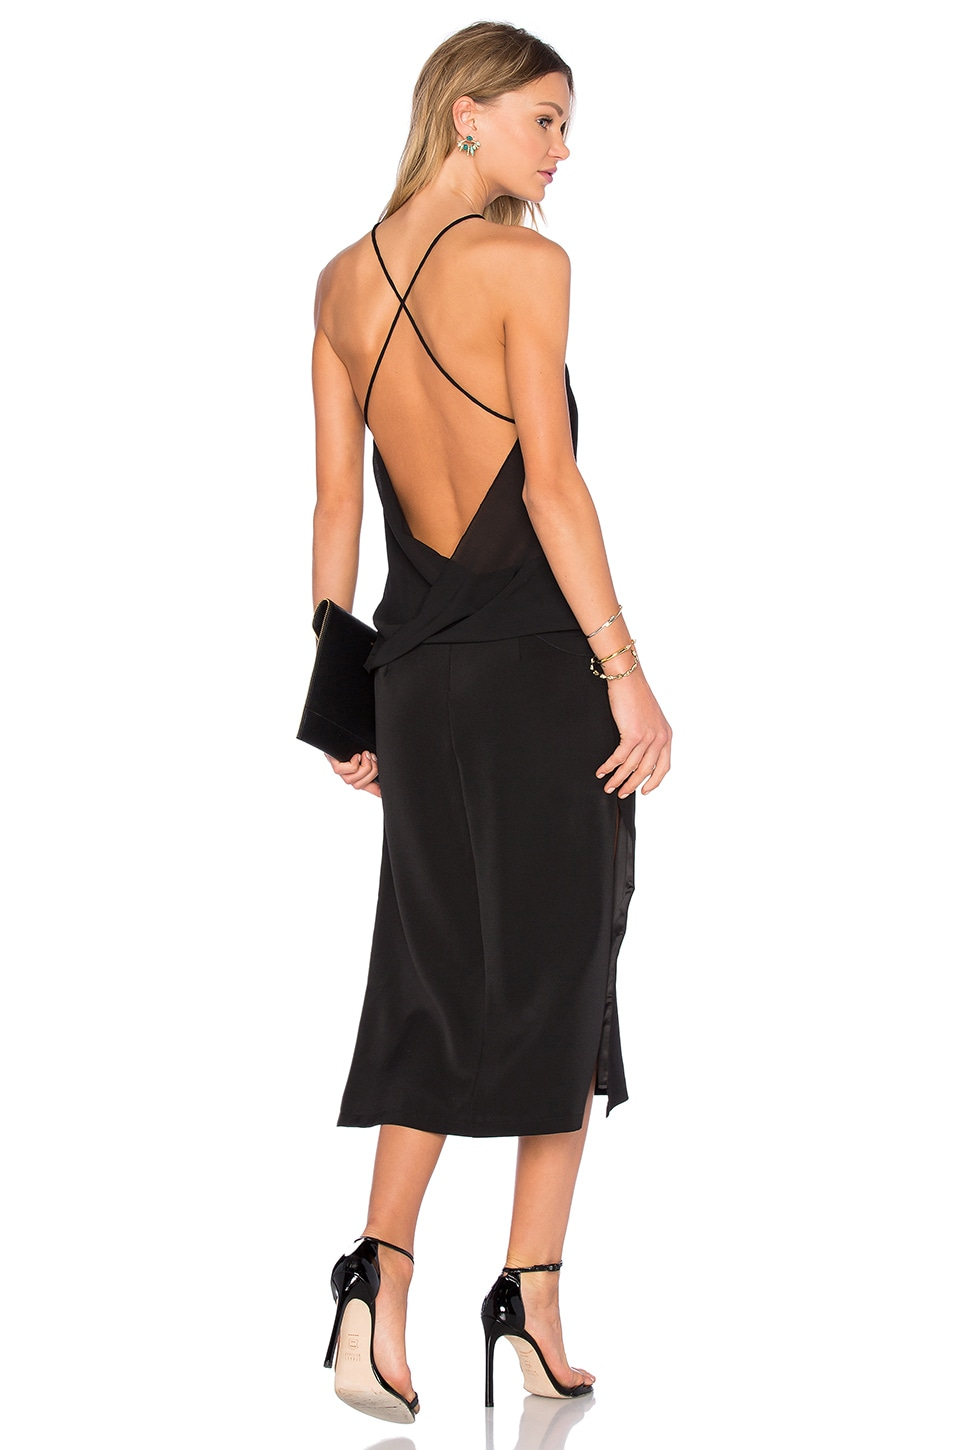 Strapped Backless Midi Dress by MLM Label